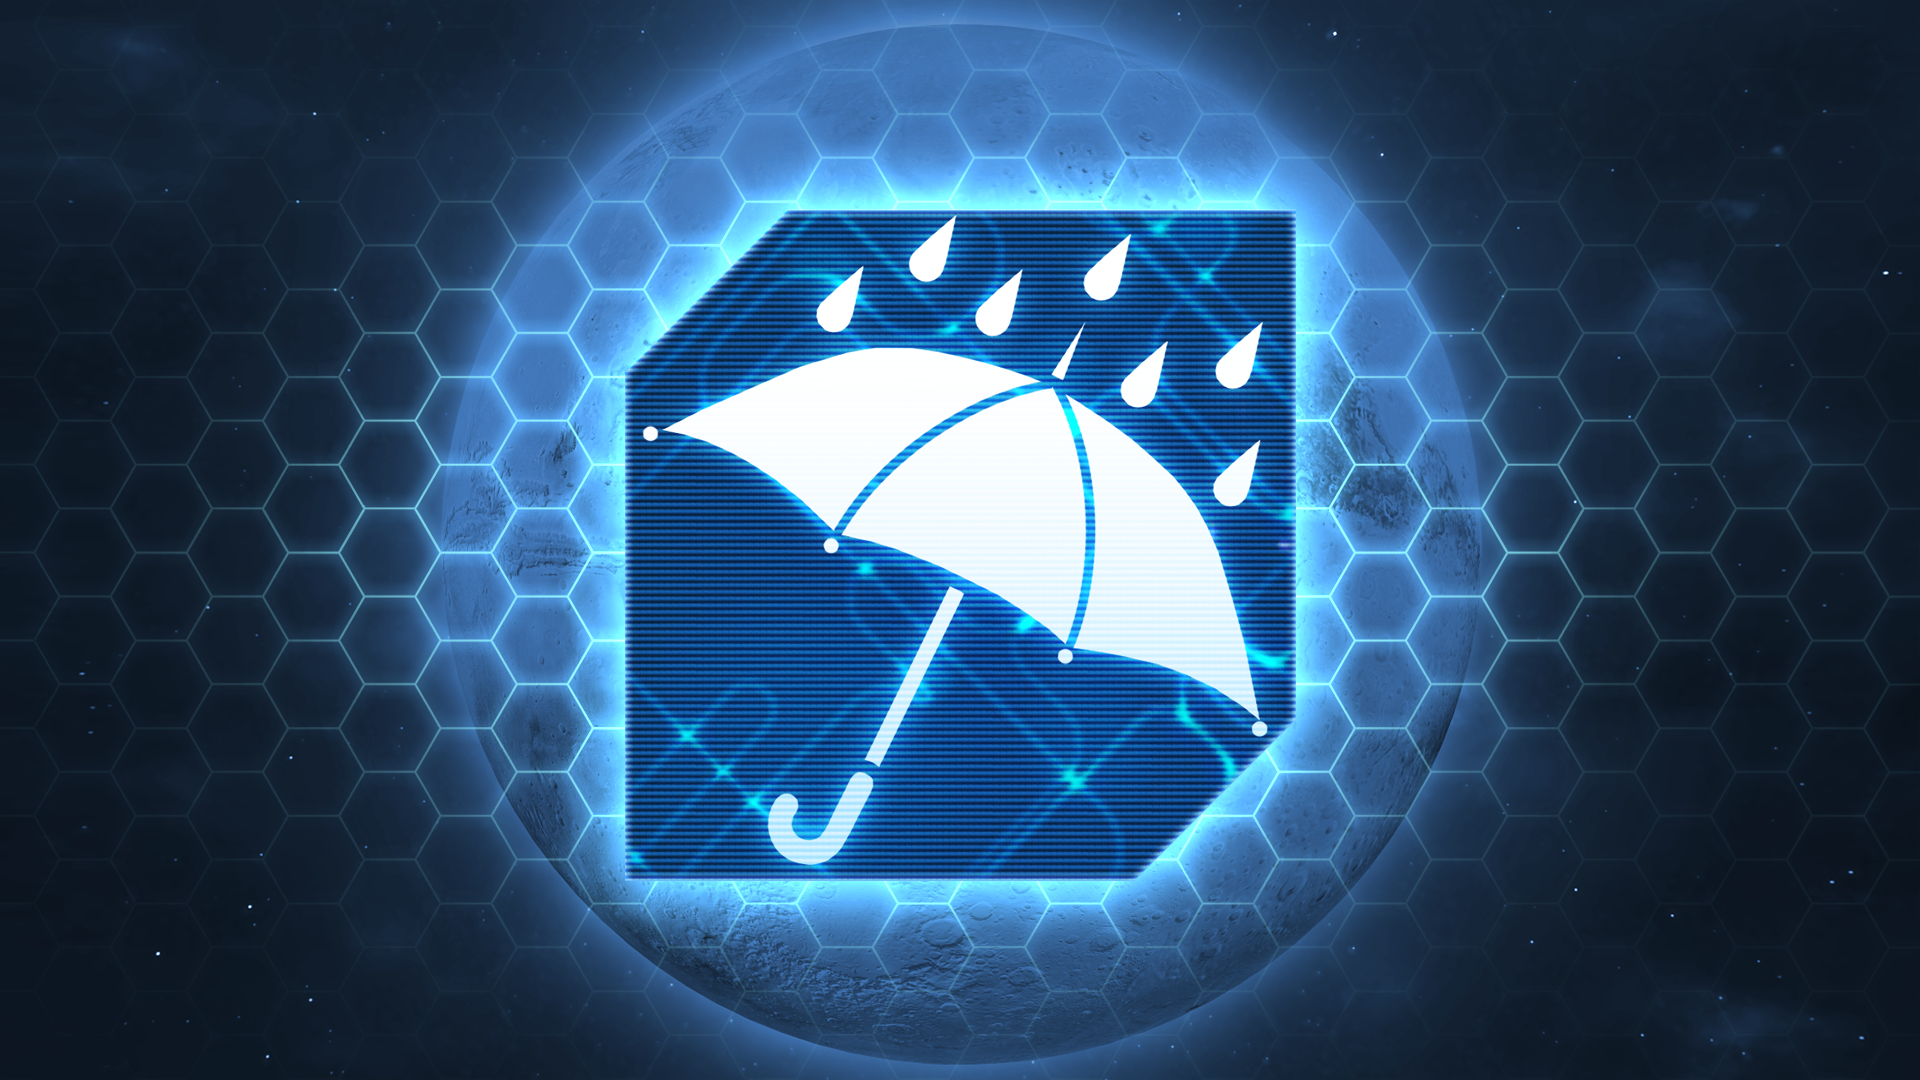 Icon for Tears of Joy